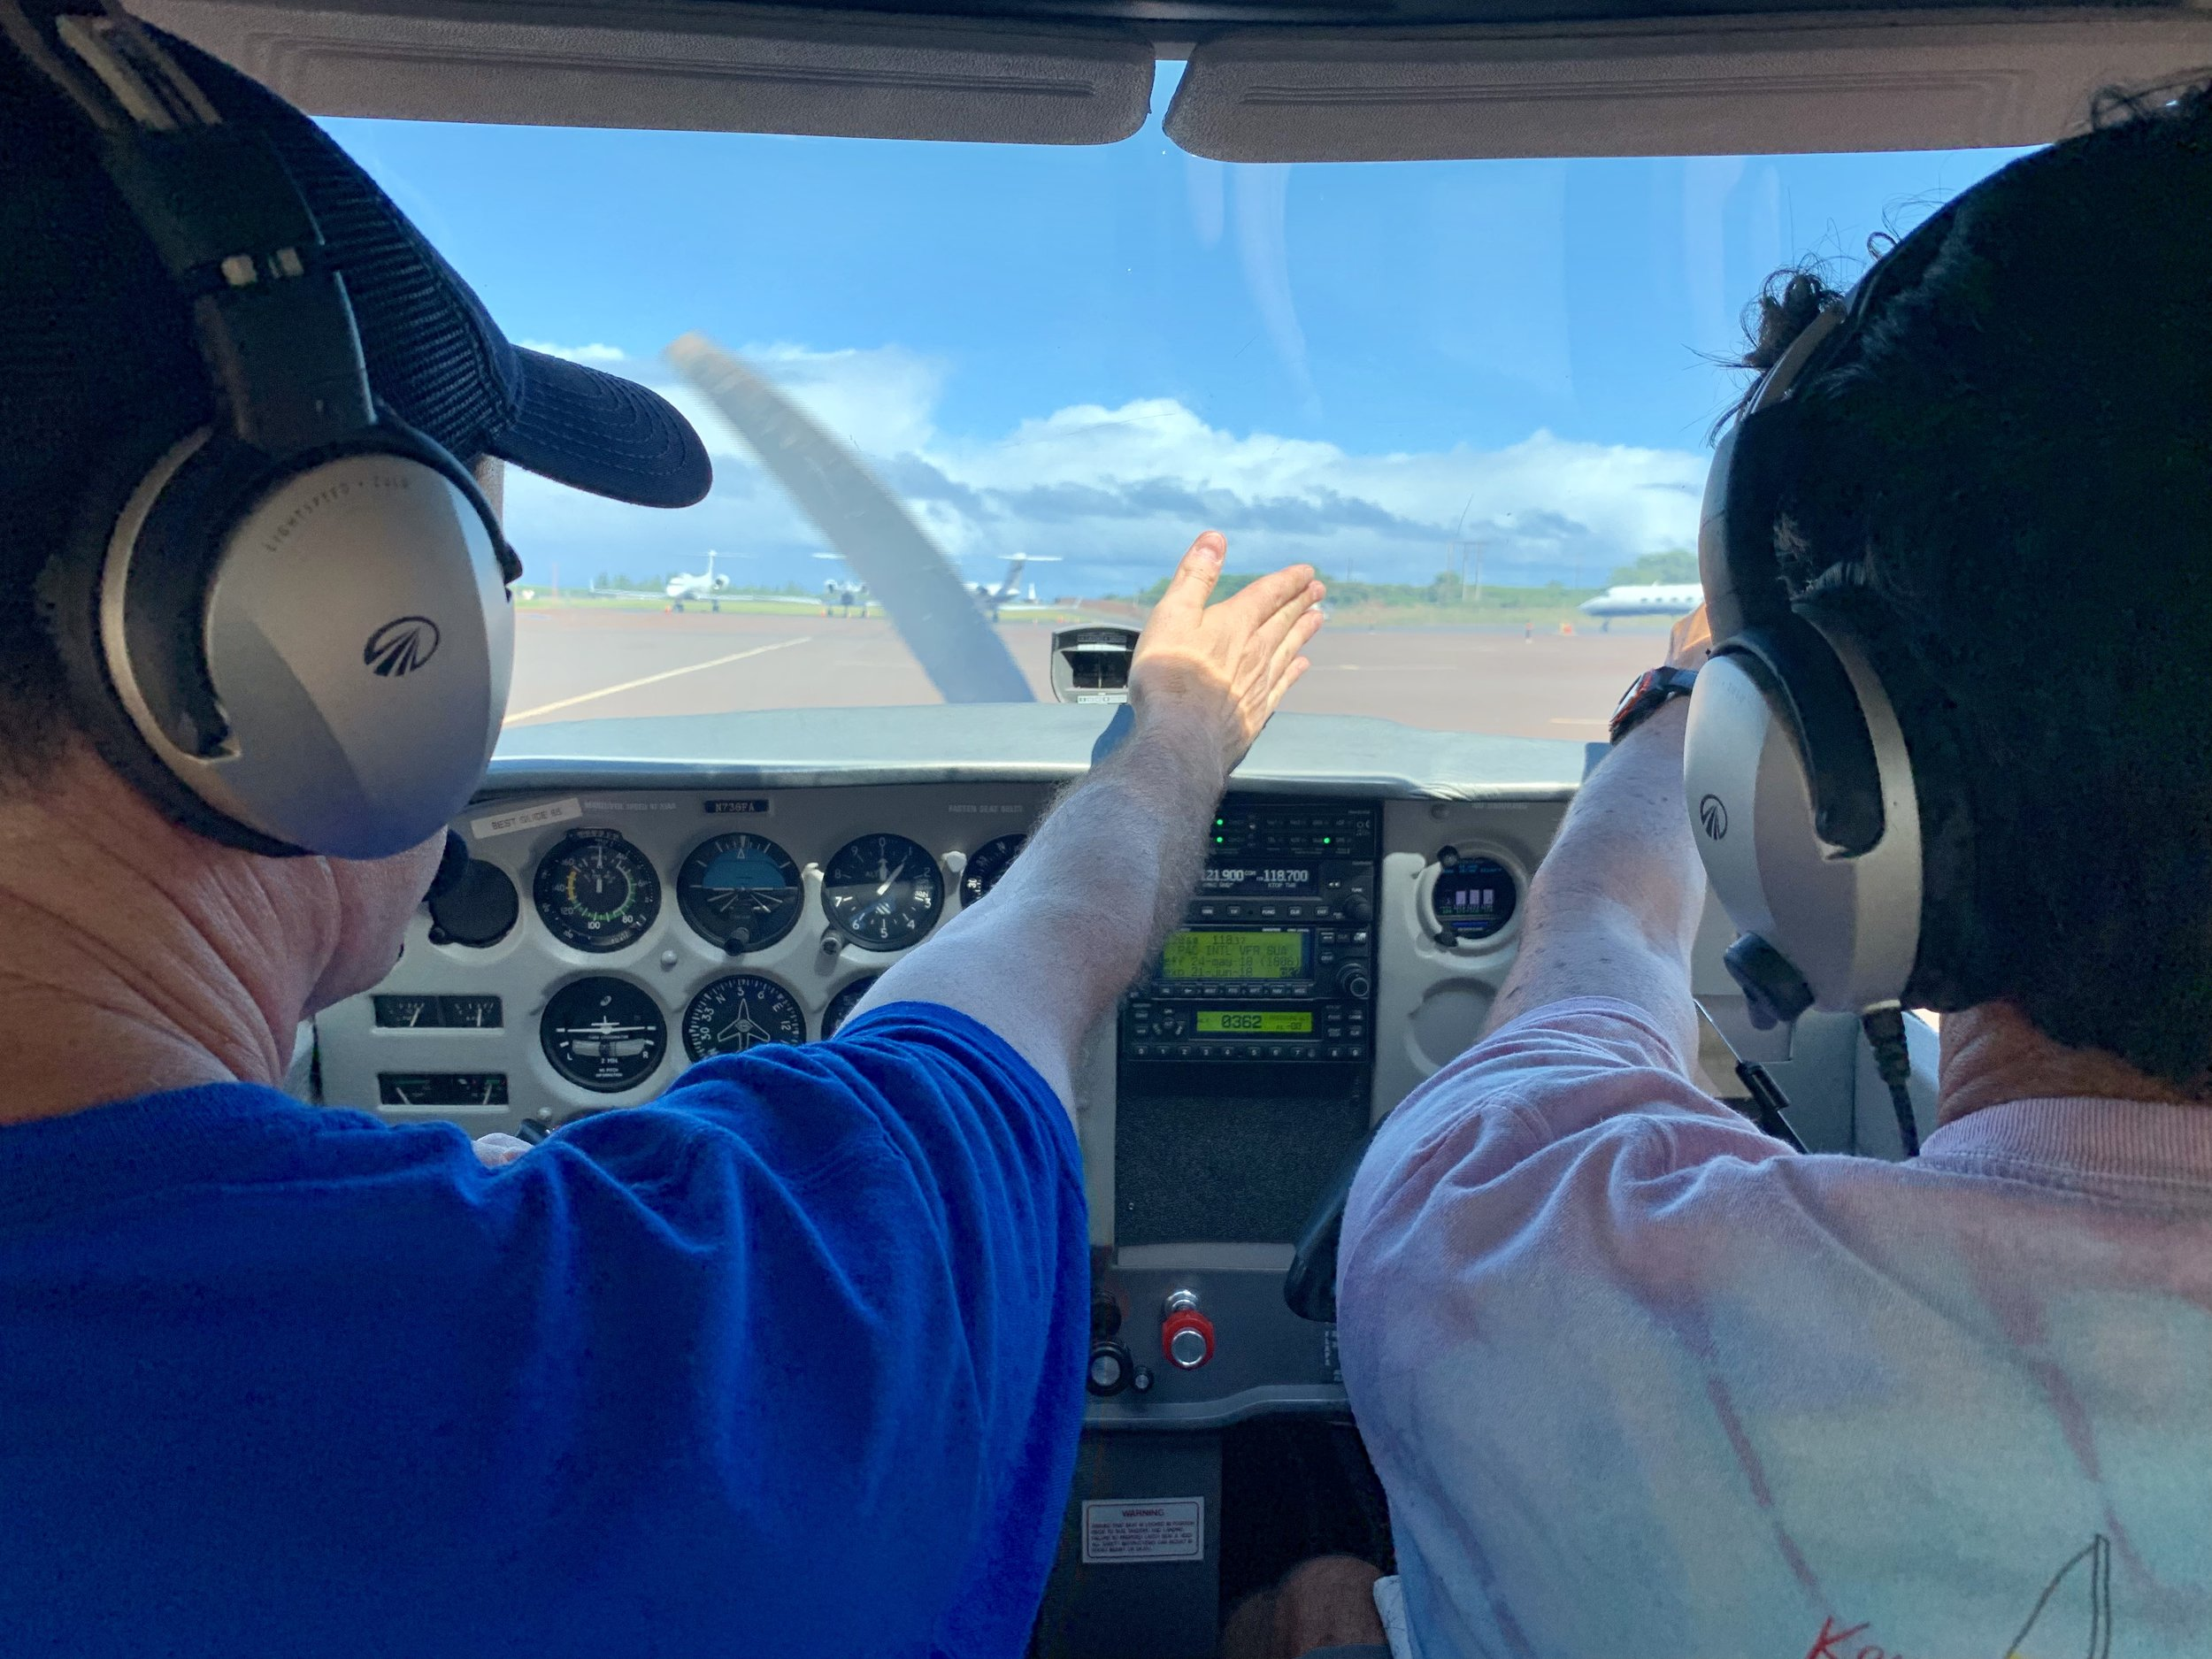 flight training - Fulfill your dream of becoming a pilot! Whether as a hobby or stepping into aviation as a career, we're here to guide you.